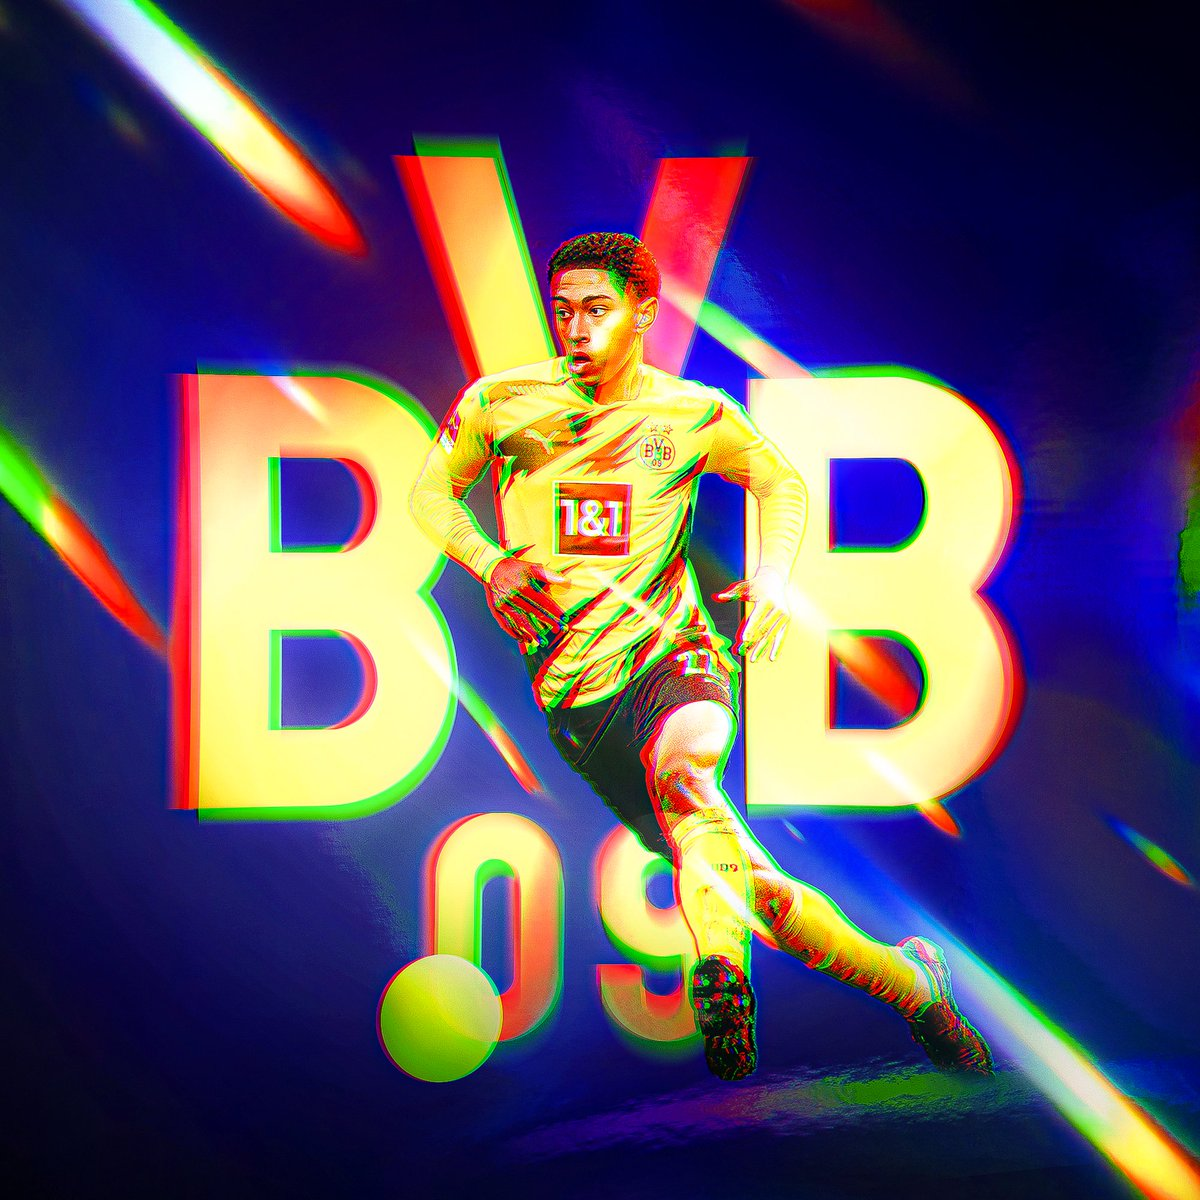 If you're a young English baller, Germany seems the place to be. Mad to think @BellinghamJude  is only 17 ✨  #smsports #BVB09 #Dortmund @BlackYellow https://t.co/GqpmwEjQ60